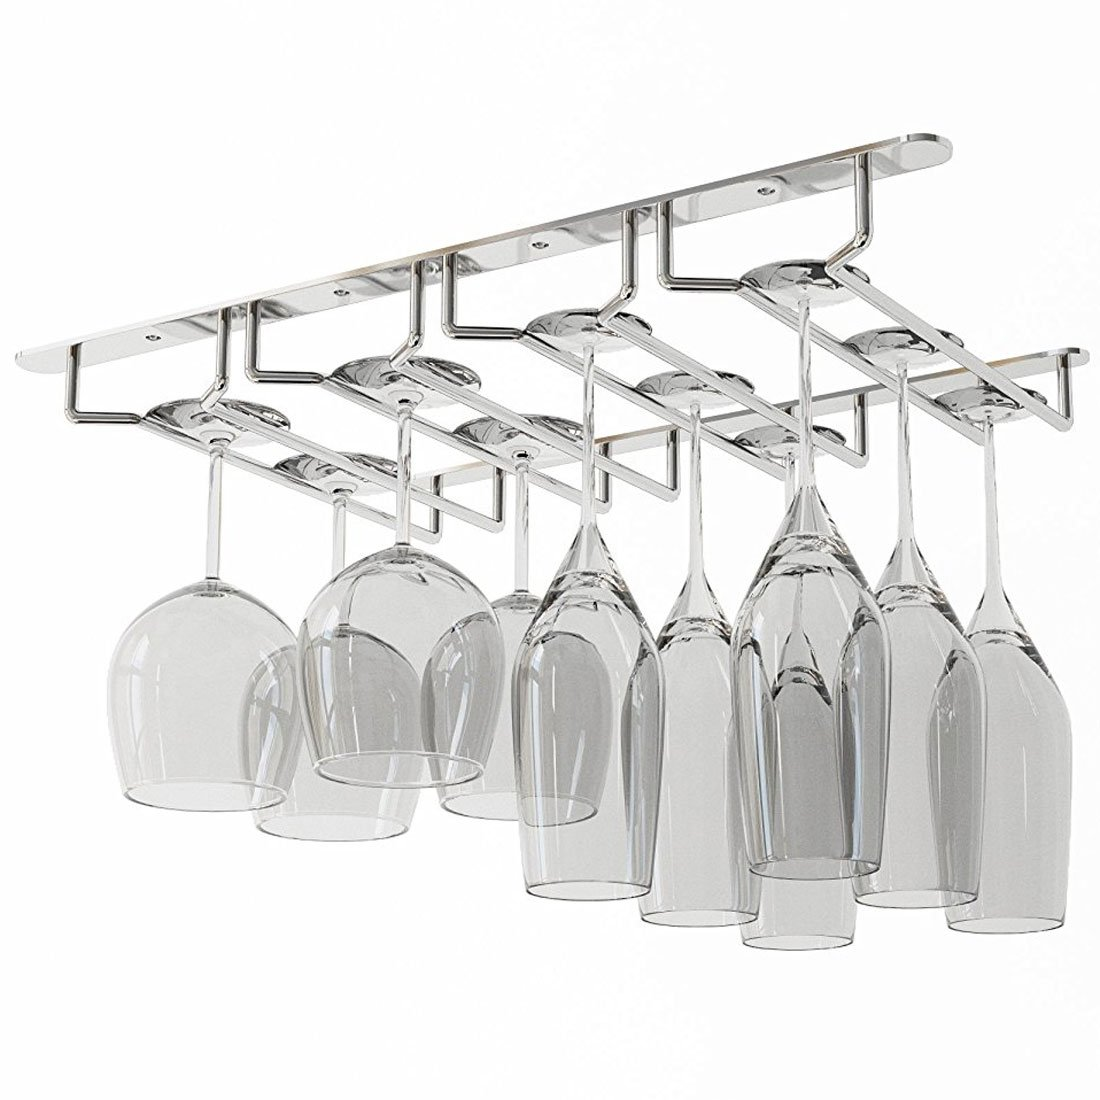 Wallniture Under Cabinet Stemware Glass Storage Rack Chrome Finish 17 3/4